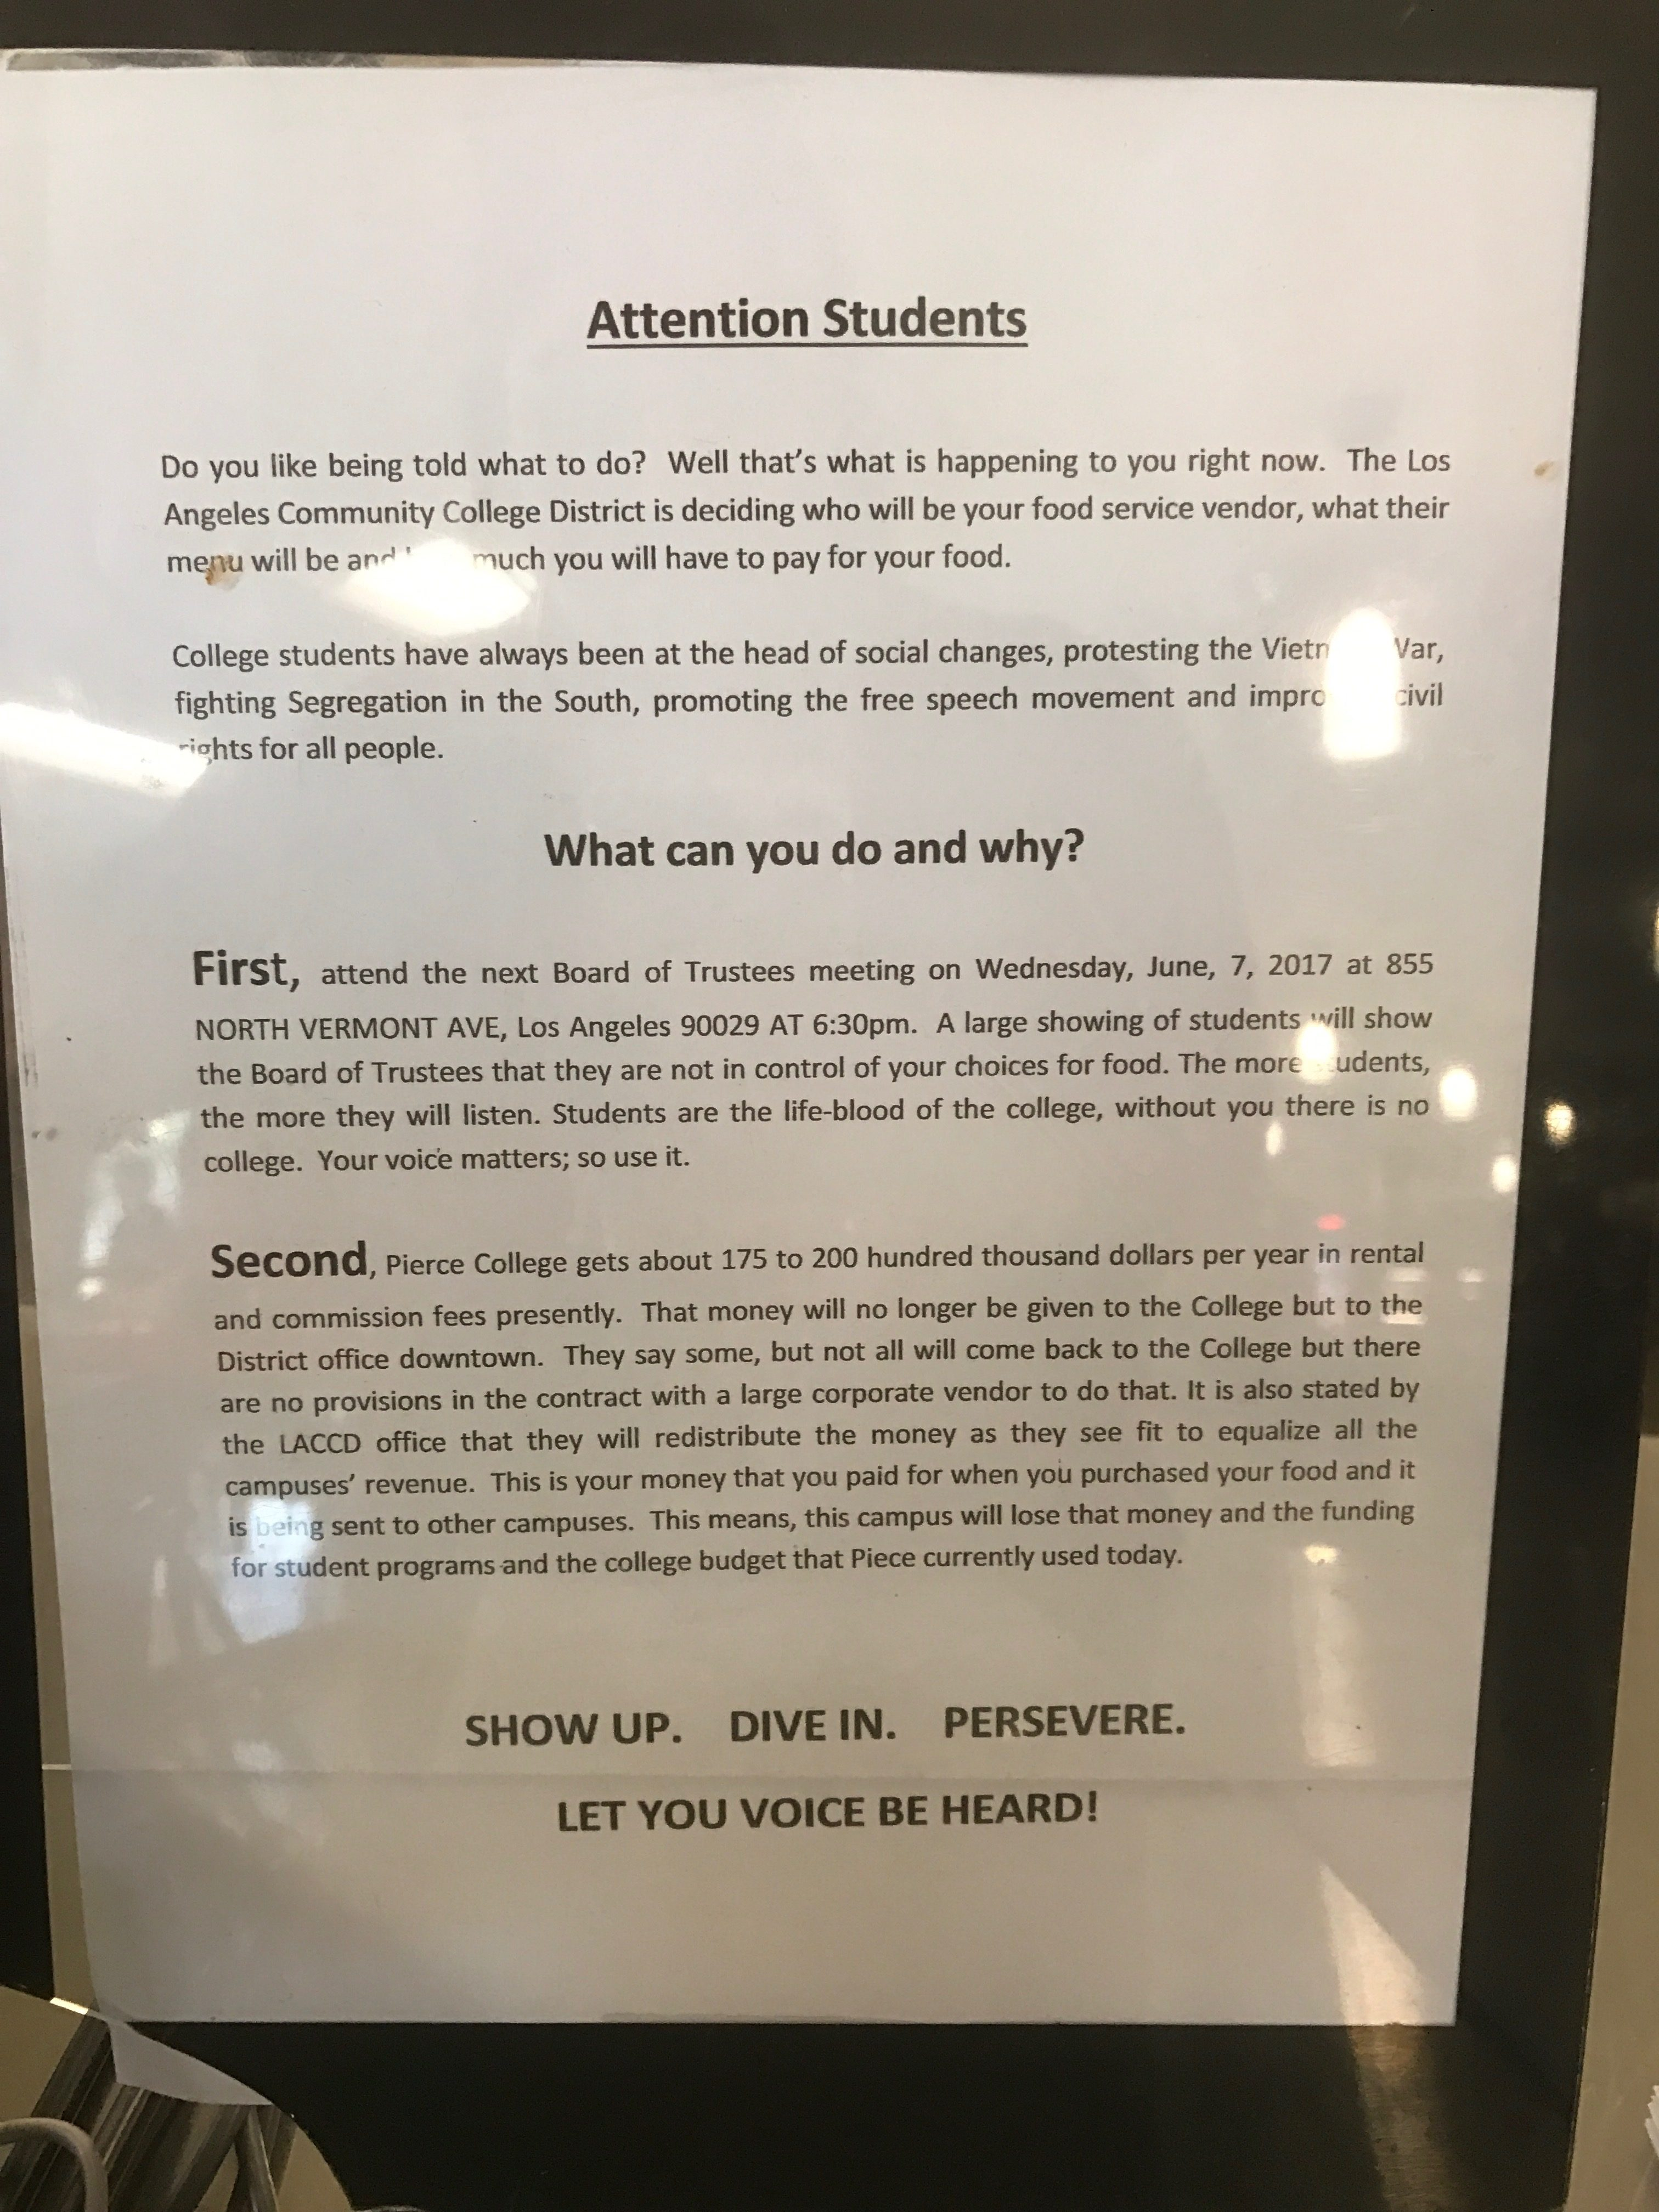 Falafelicious Catering and students to protest at BOT meeting